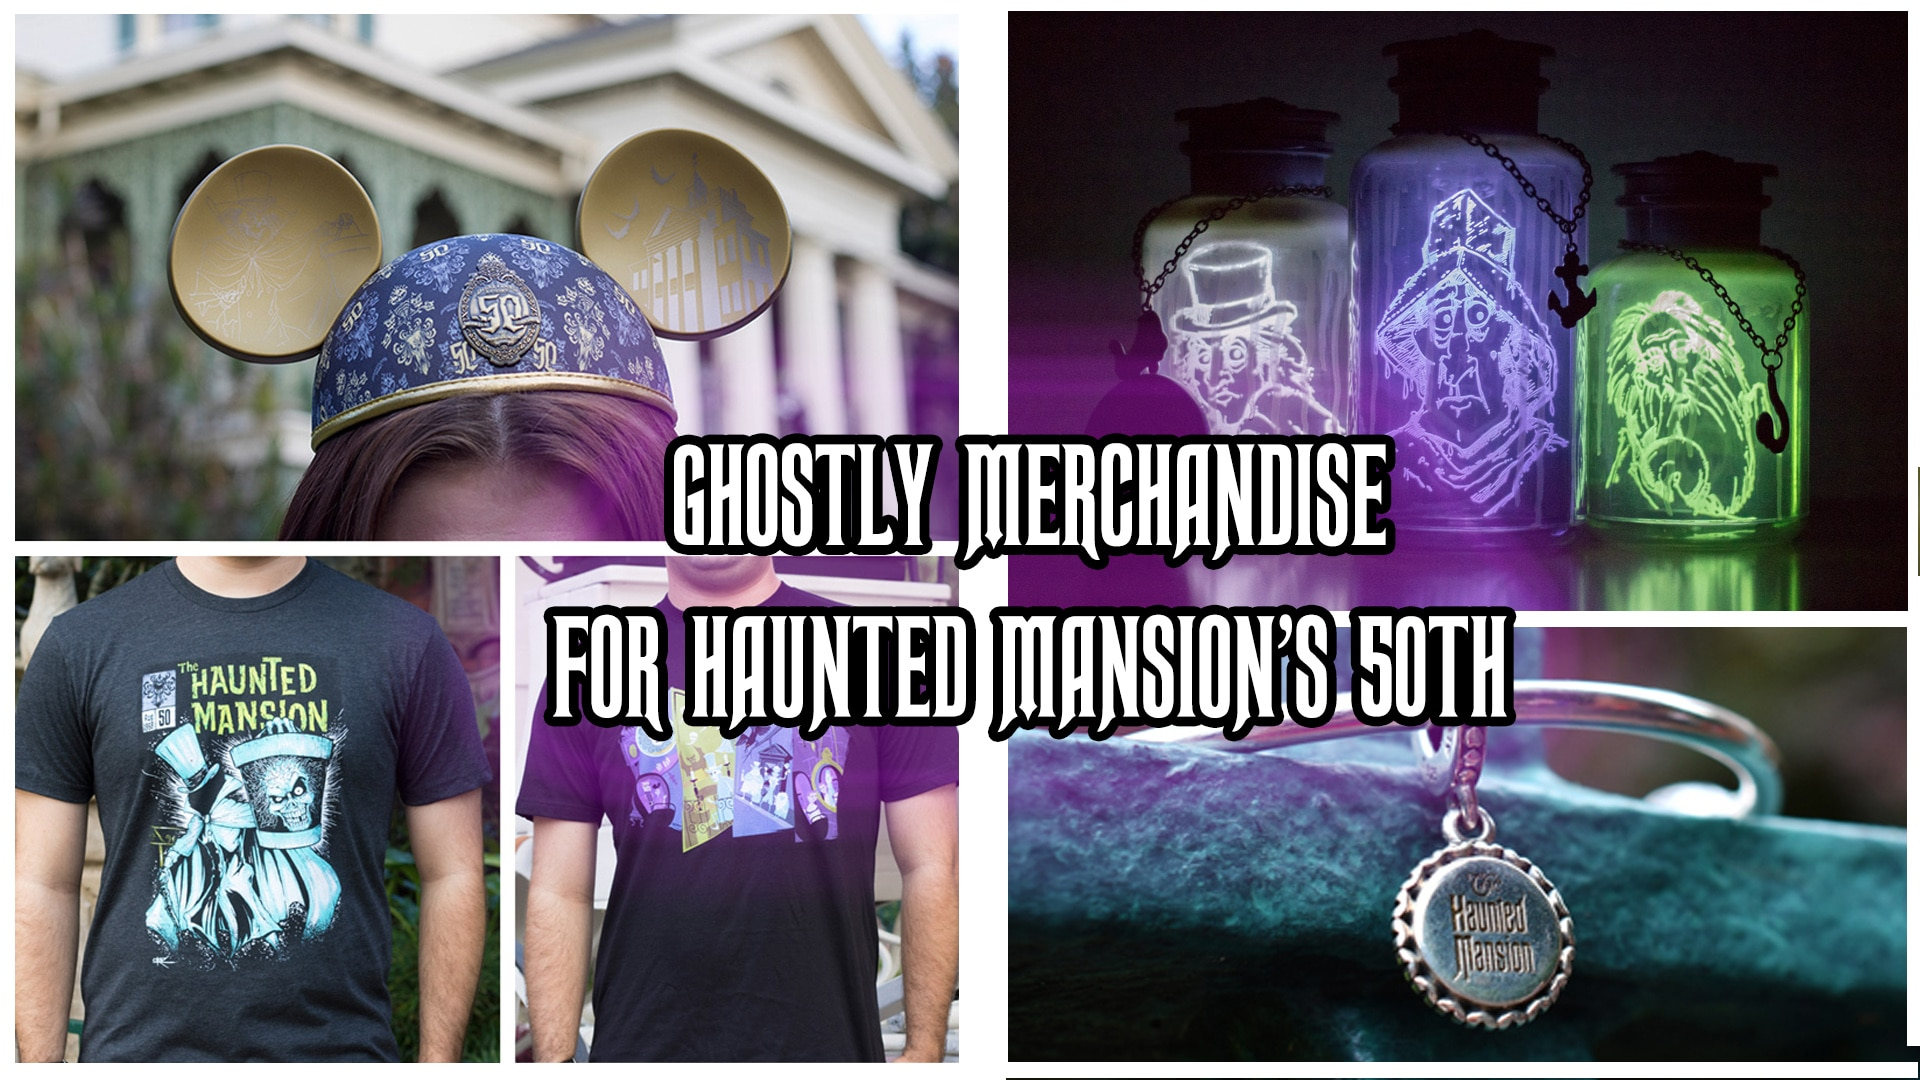 Details and Merchandise Materialize For Haunted Mansion's 50th Anniversary